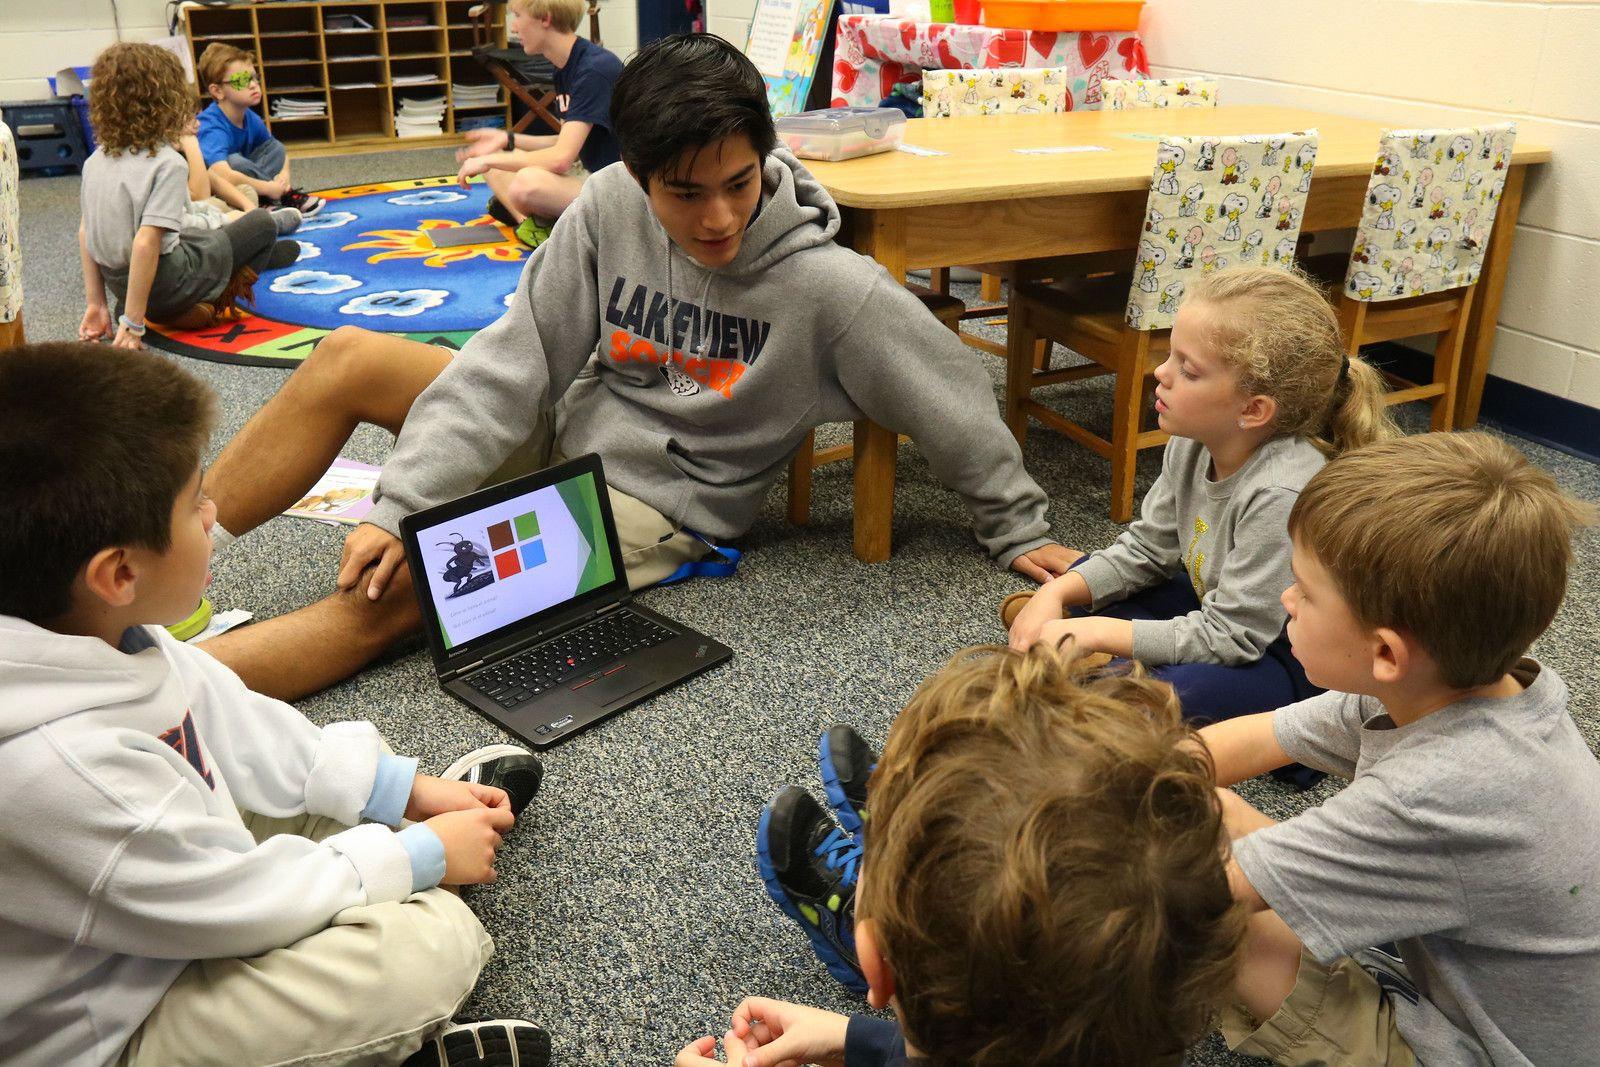 Using his laptop, an AP Spanish student reads a story in Spanish to Kindergarten students.